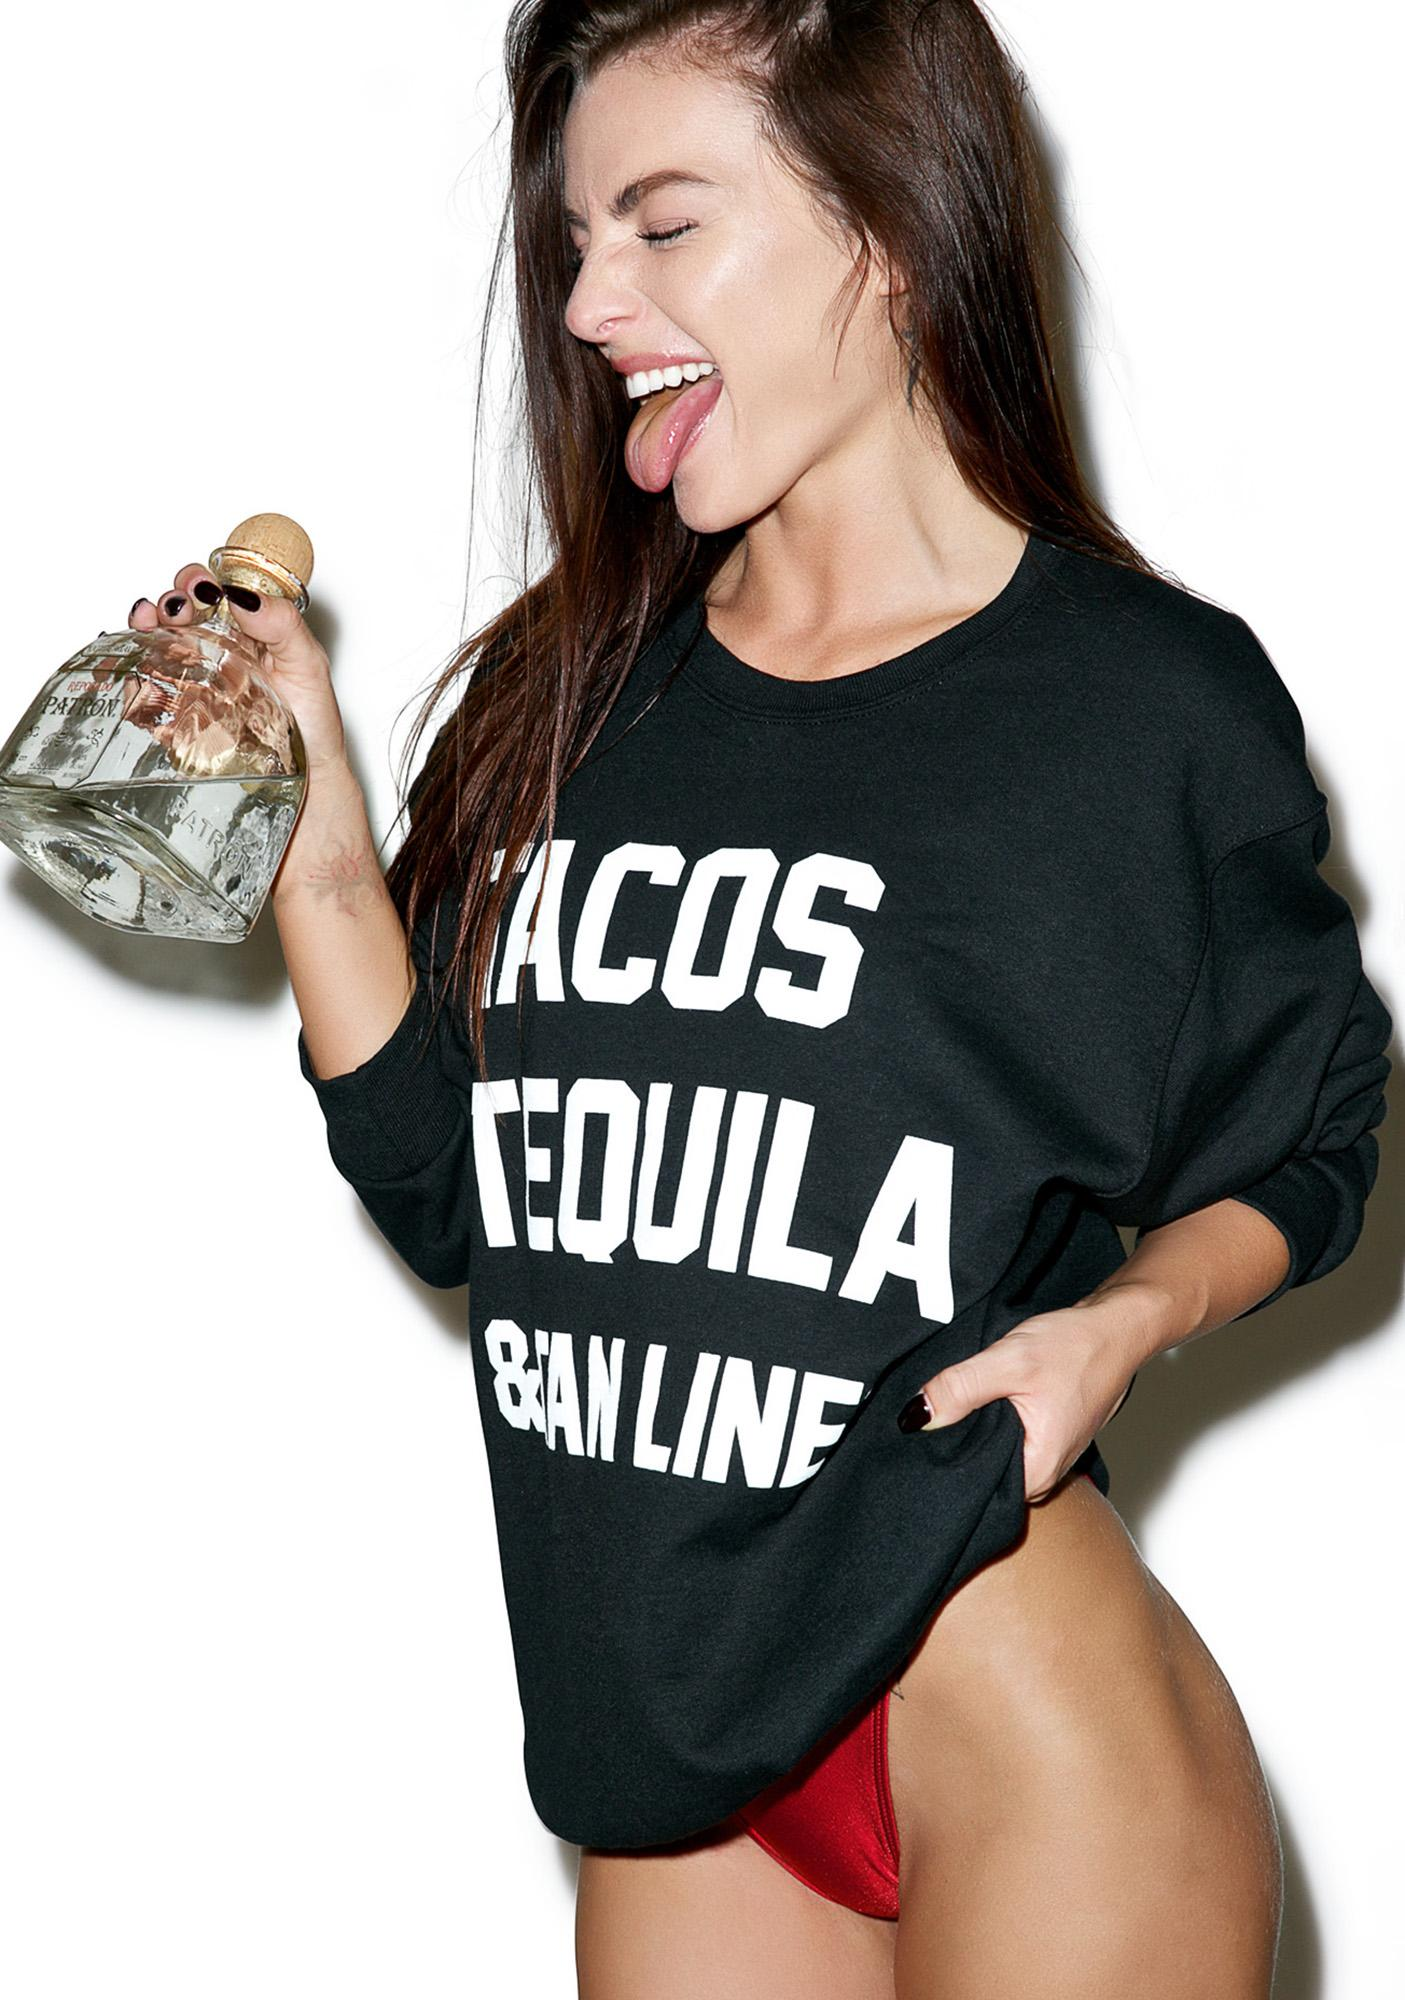 Private Party Tacos Tequila & Tan Lines Sweater